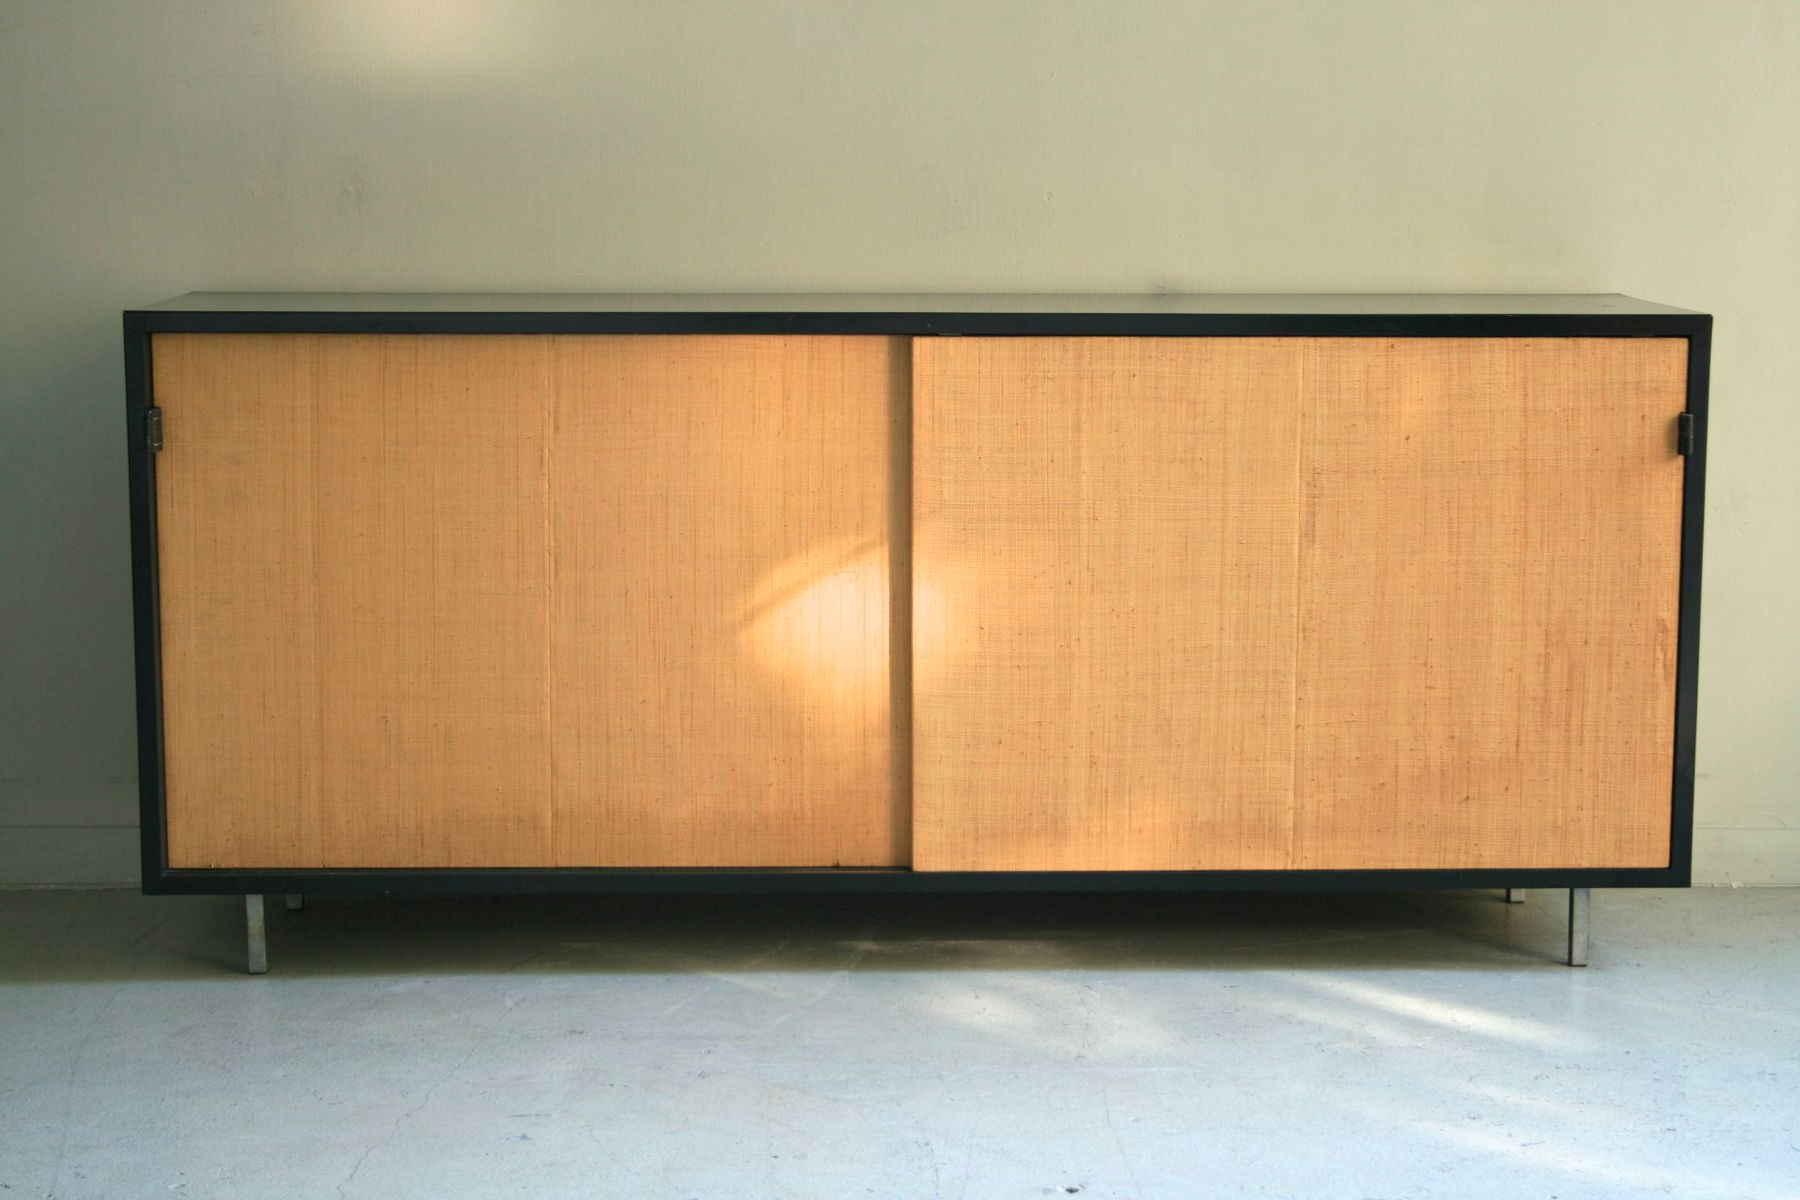 Girard 4 Door Sideboards With Regard To Preferred Sideboardcees Braakman & Florence Knoll For Knoll, 1960S For (View 5 of 20)